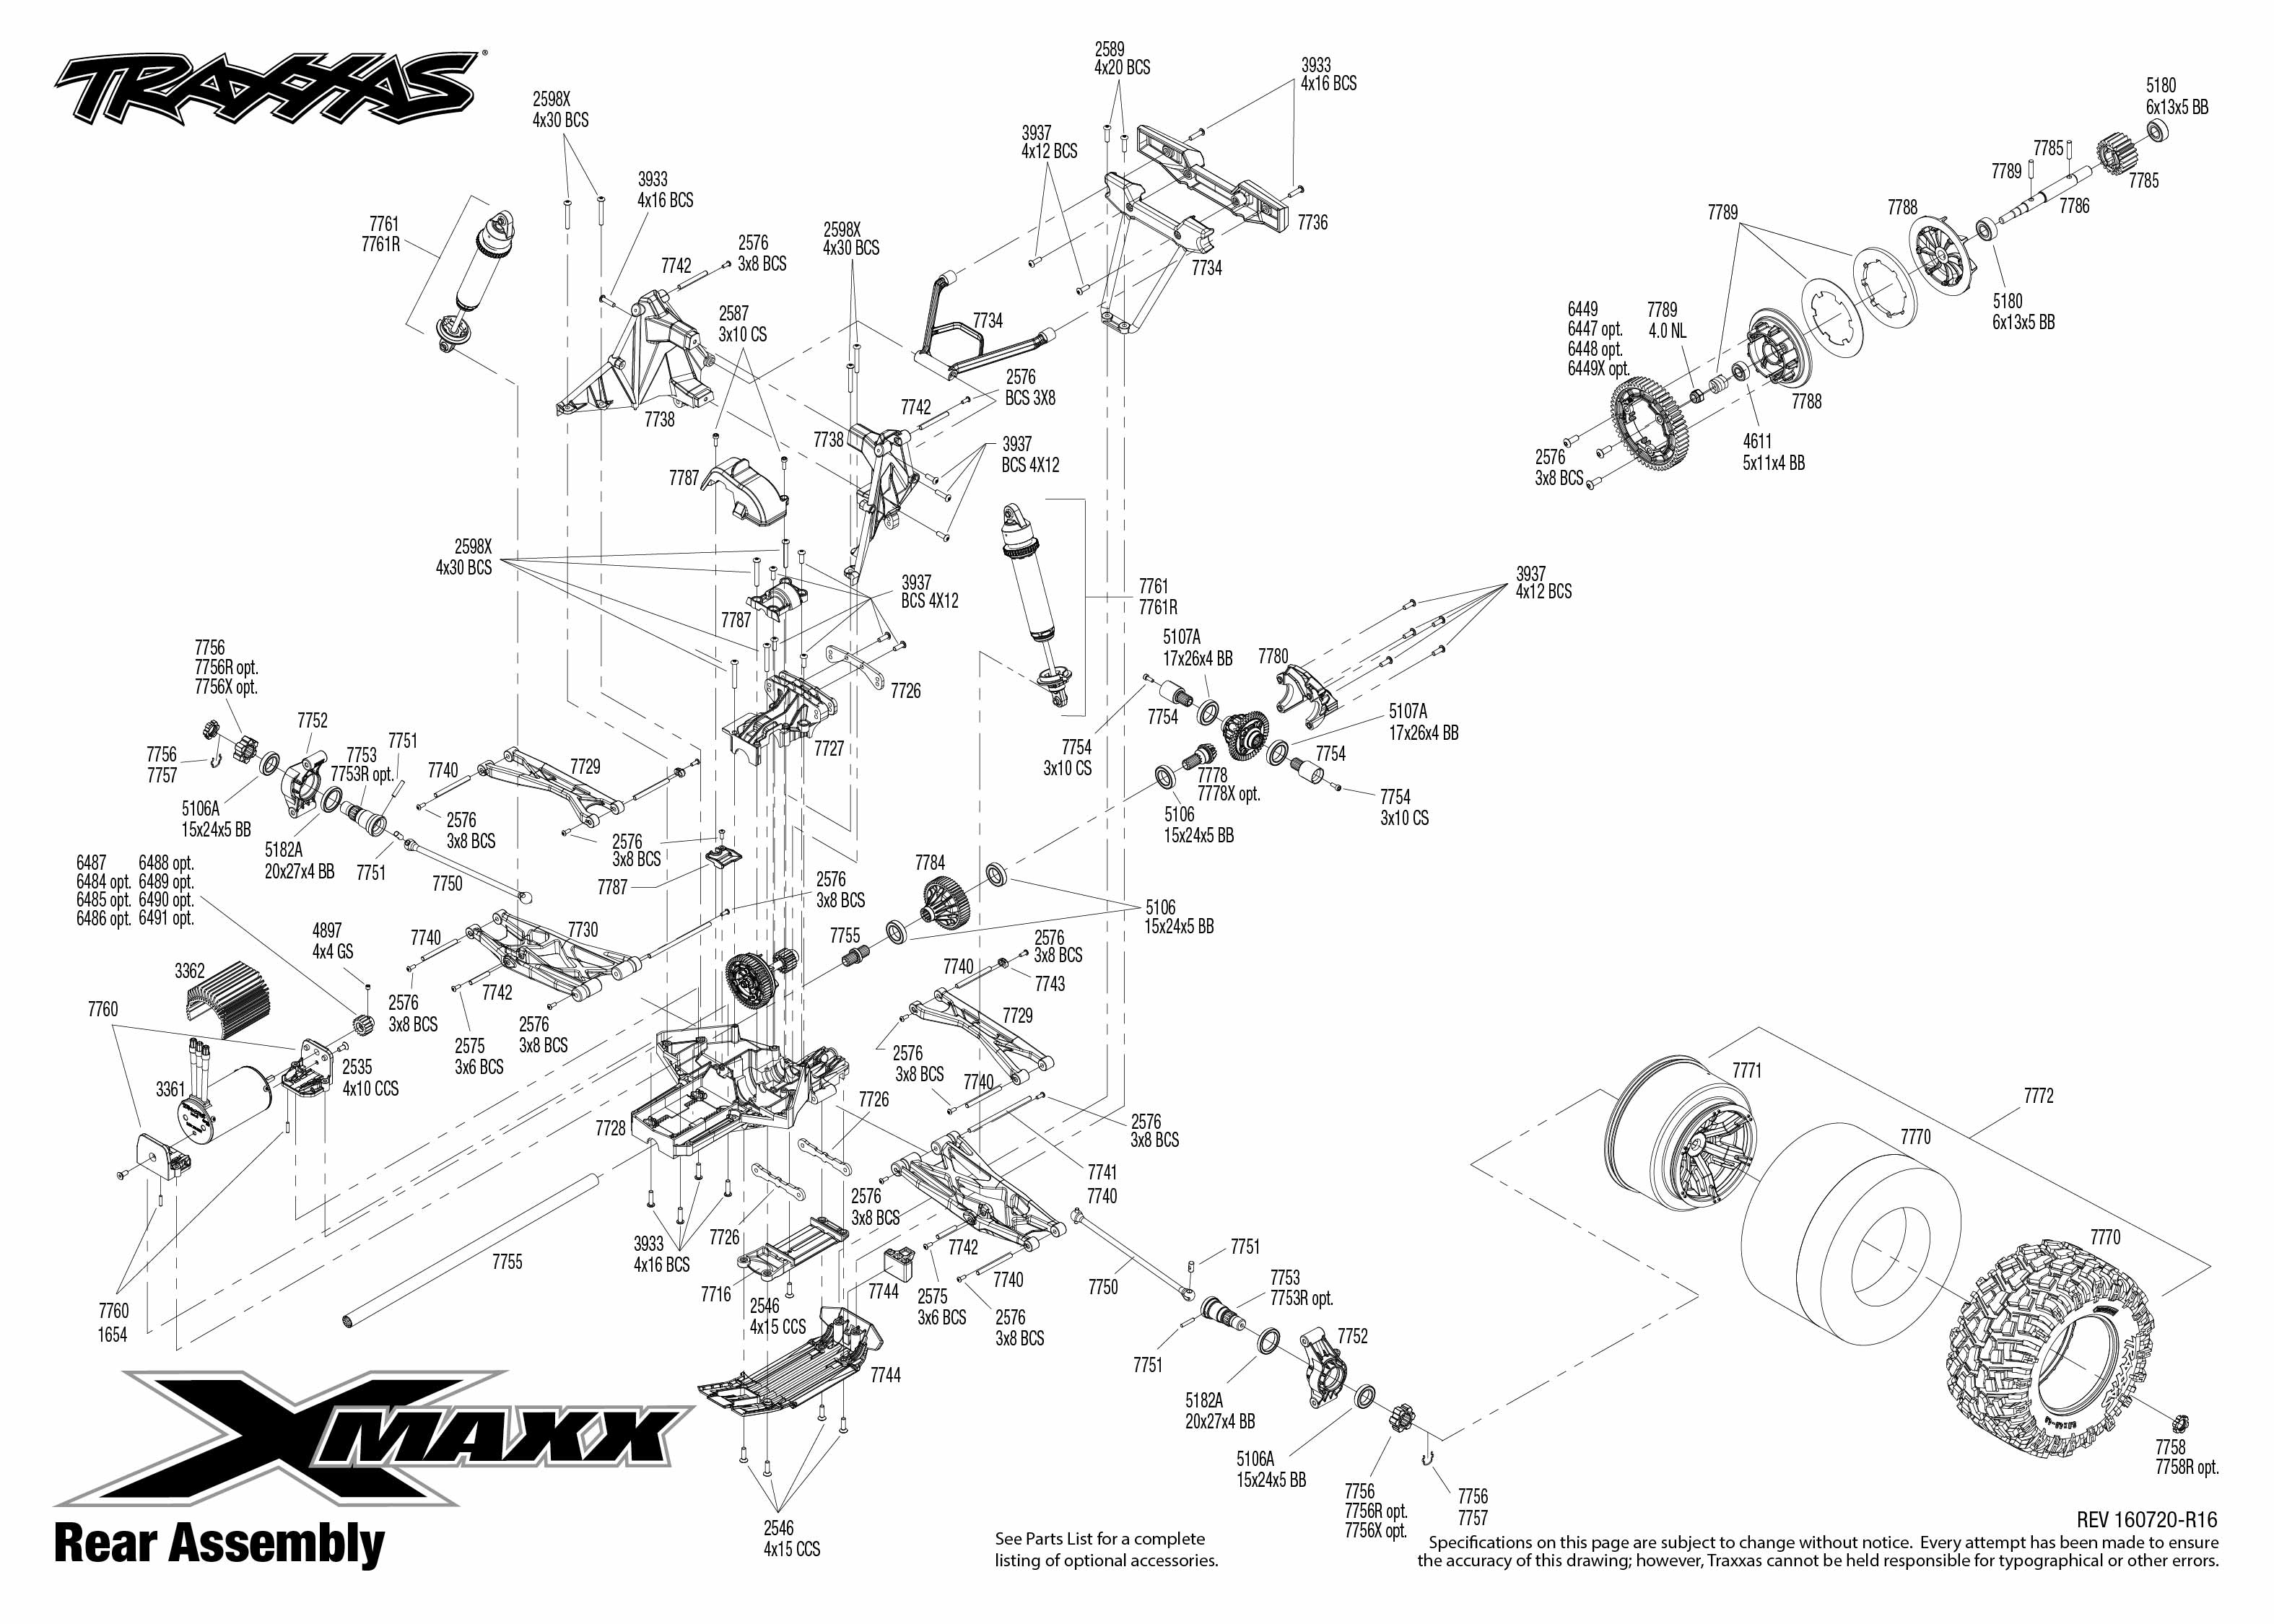 Steering Suspension Diagrams in addition P 0900c15280076edc further HP PartList together with Parts Diagram Of A Sbc 350 furthermore P 0996b43f8037f2f9. on dodge transmission rebuild